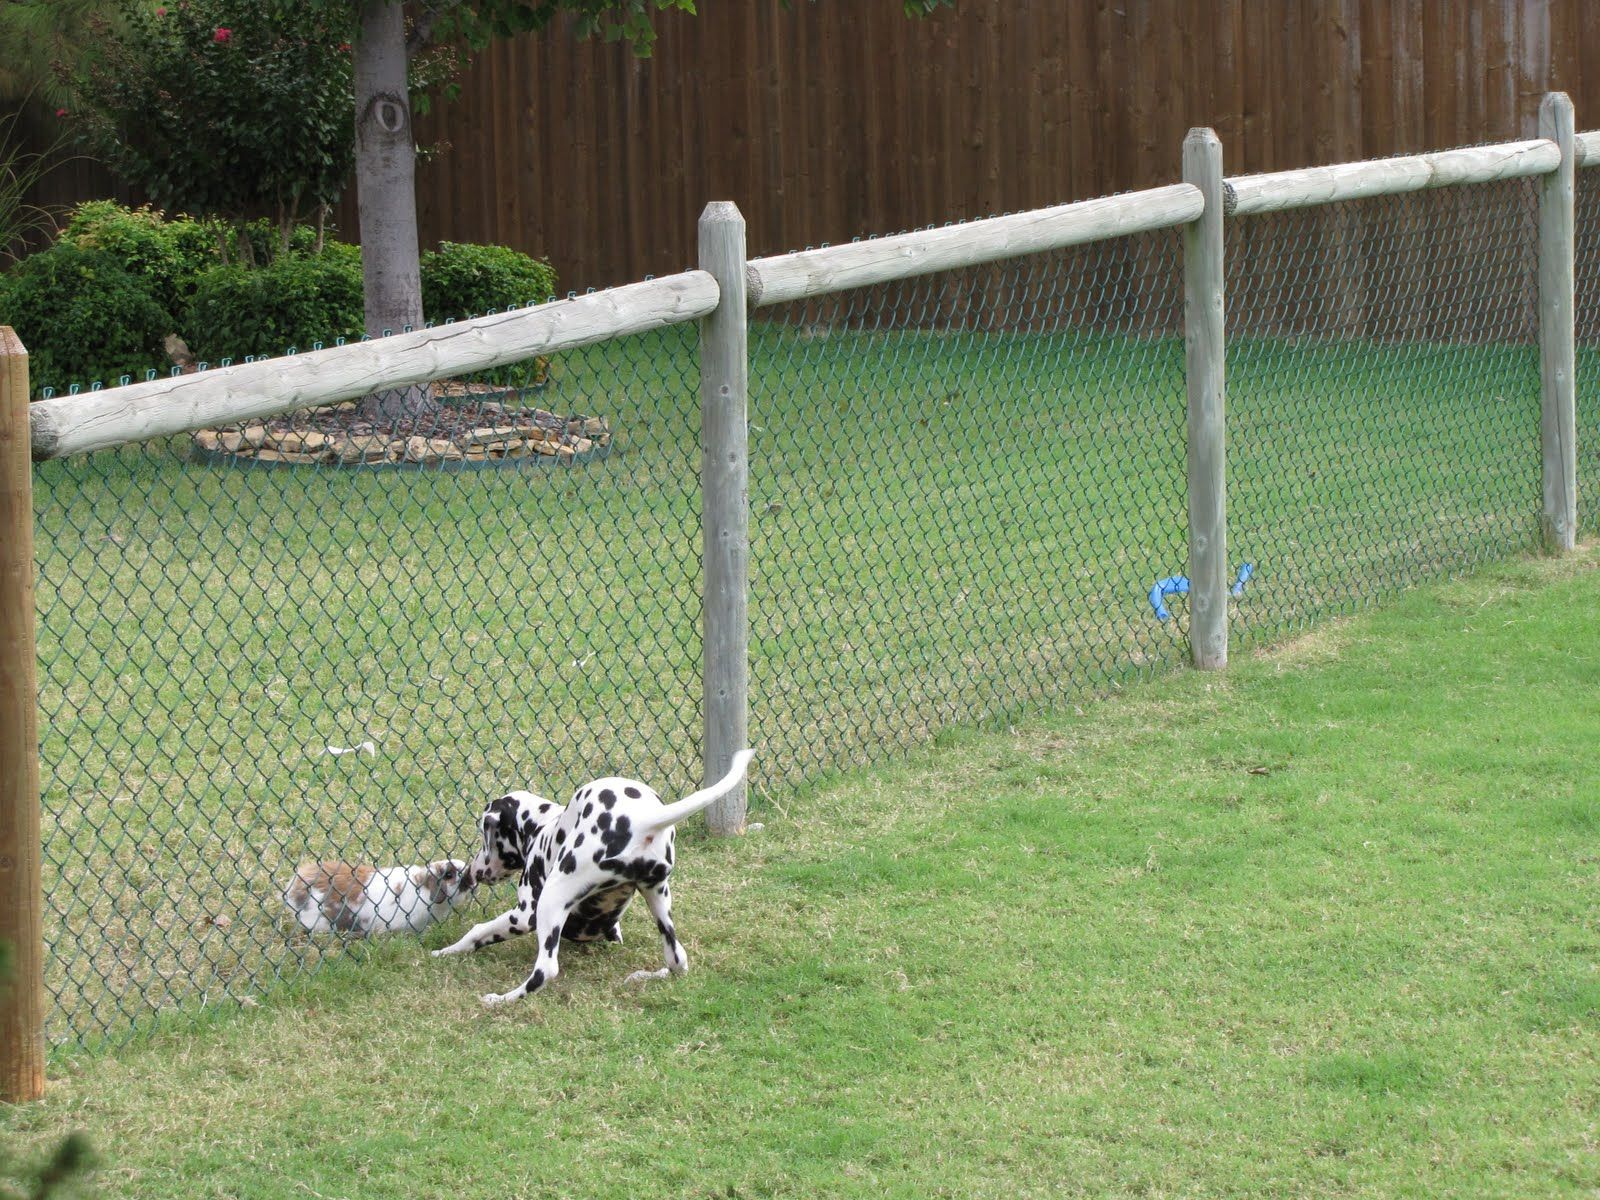 Retractable Fence For Dogs Outdoor Designs Throughout Sizing 1600 X 1200